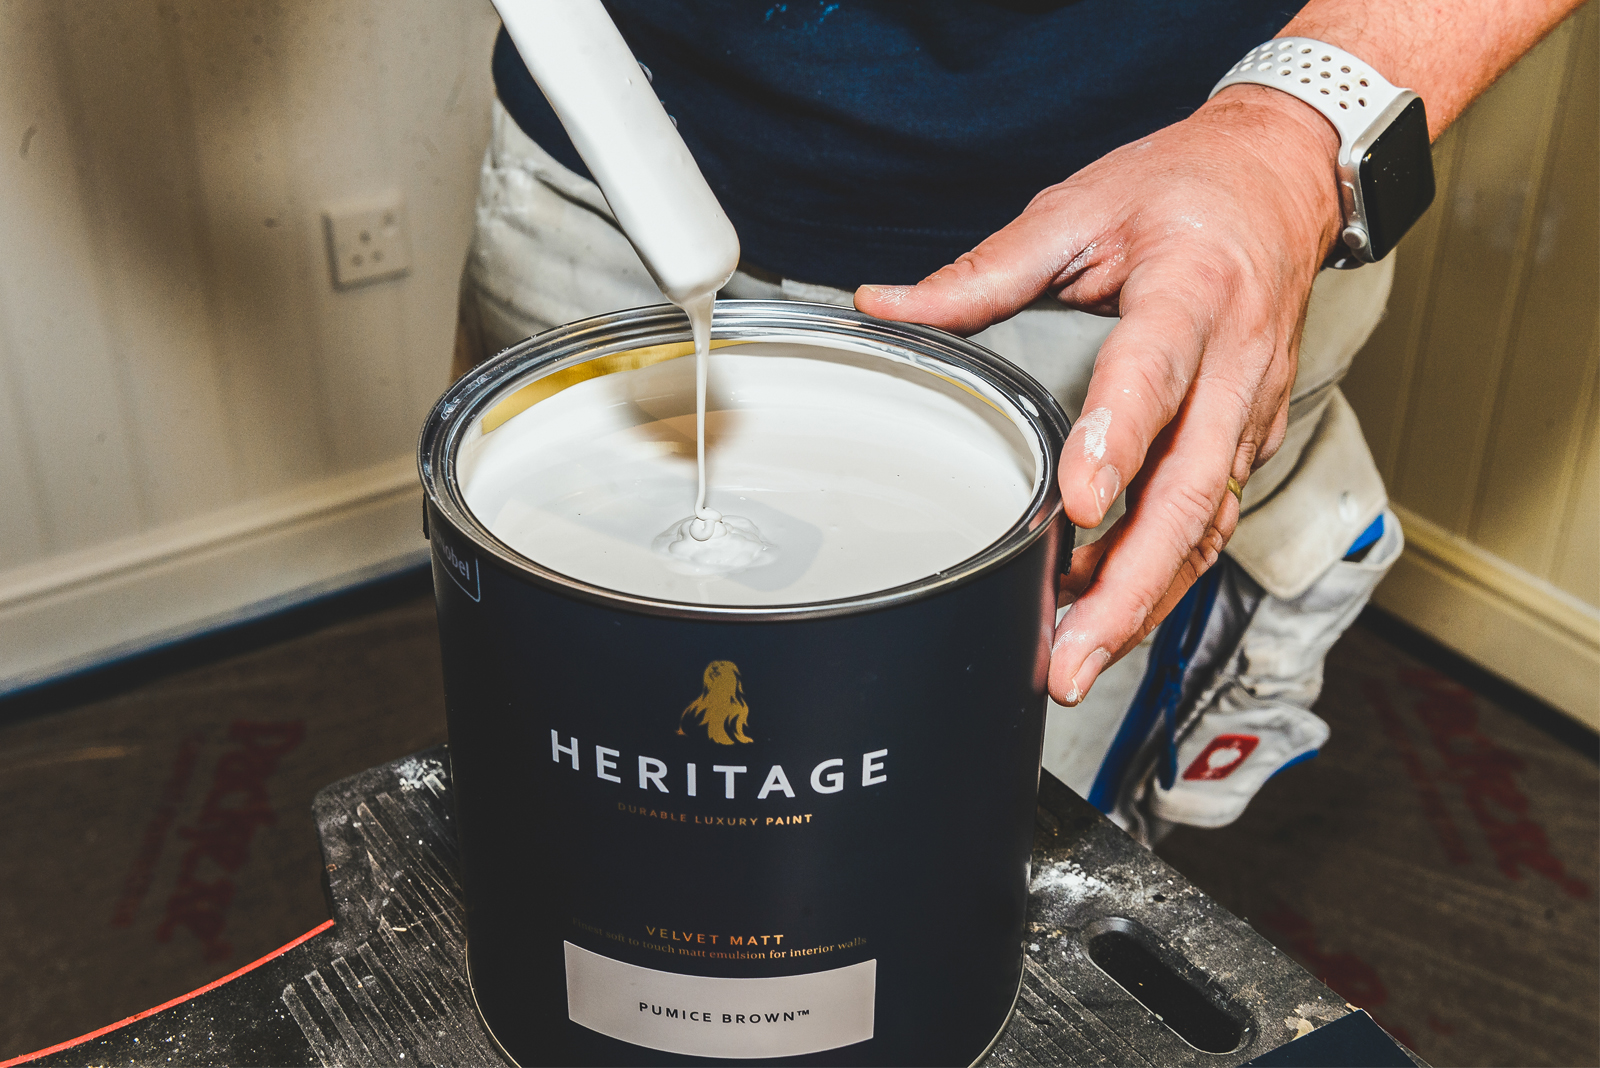 The value of the Dulux Decorator scheme and their latest Heritage range